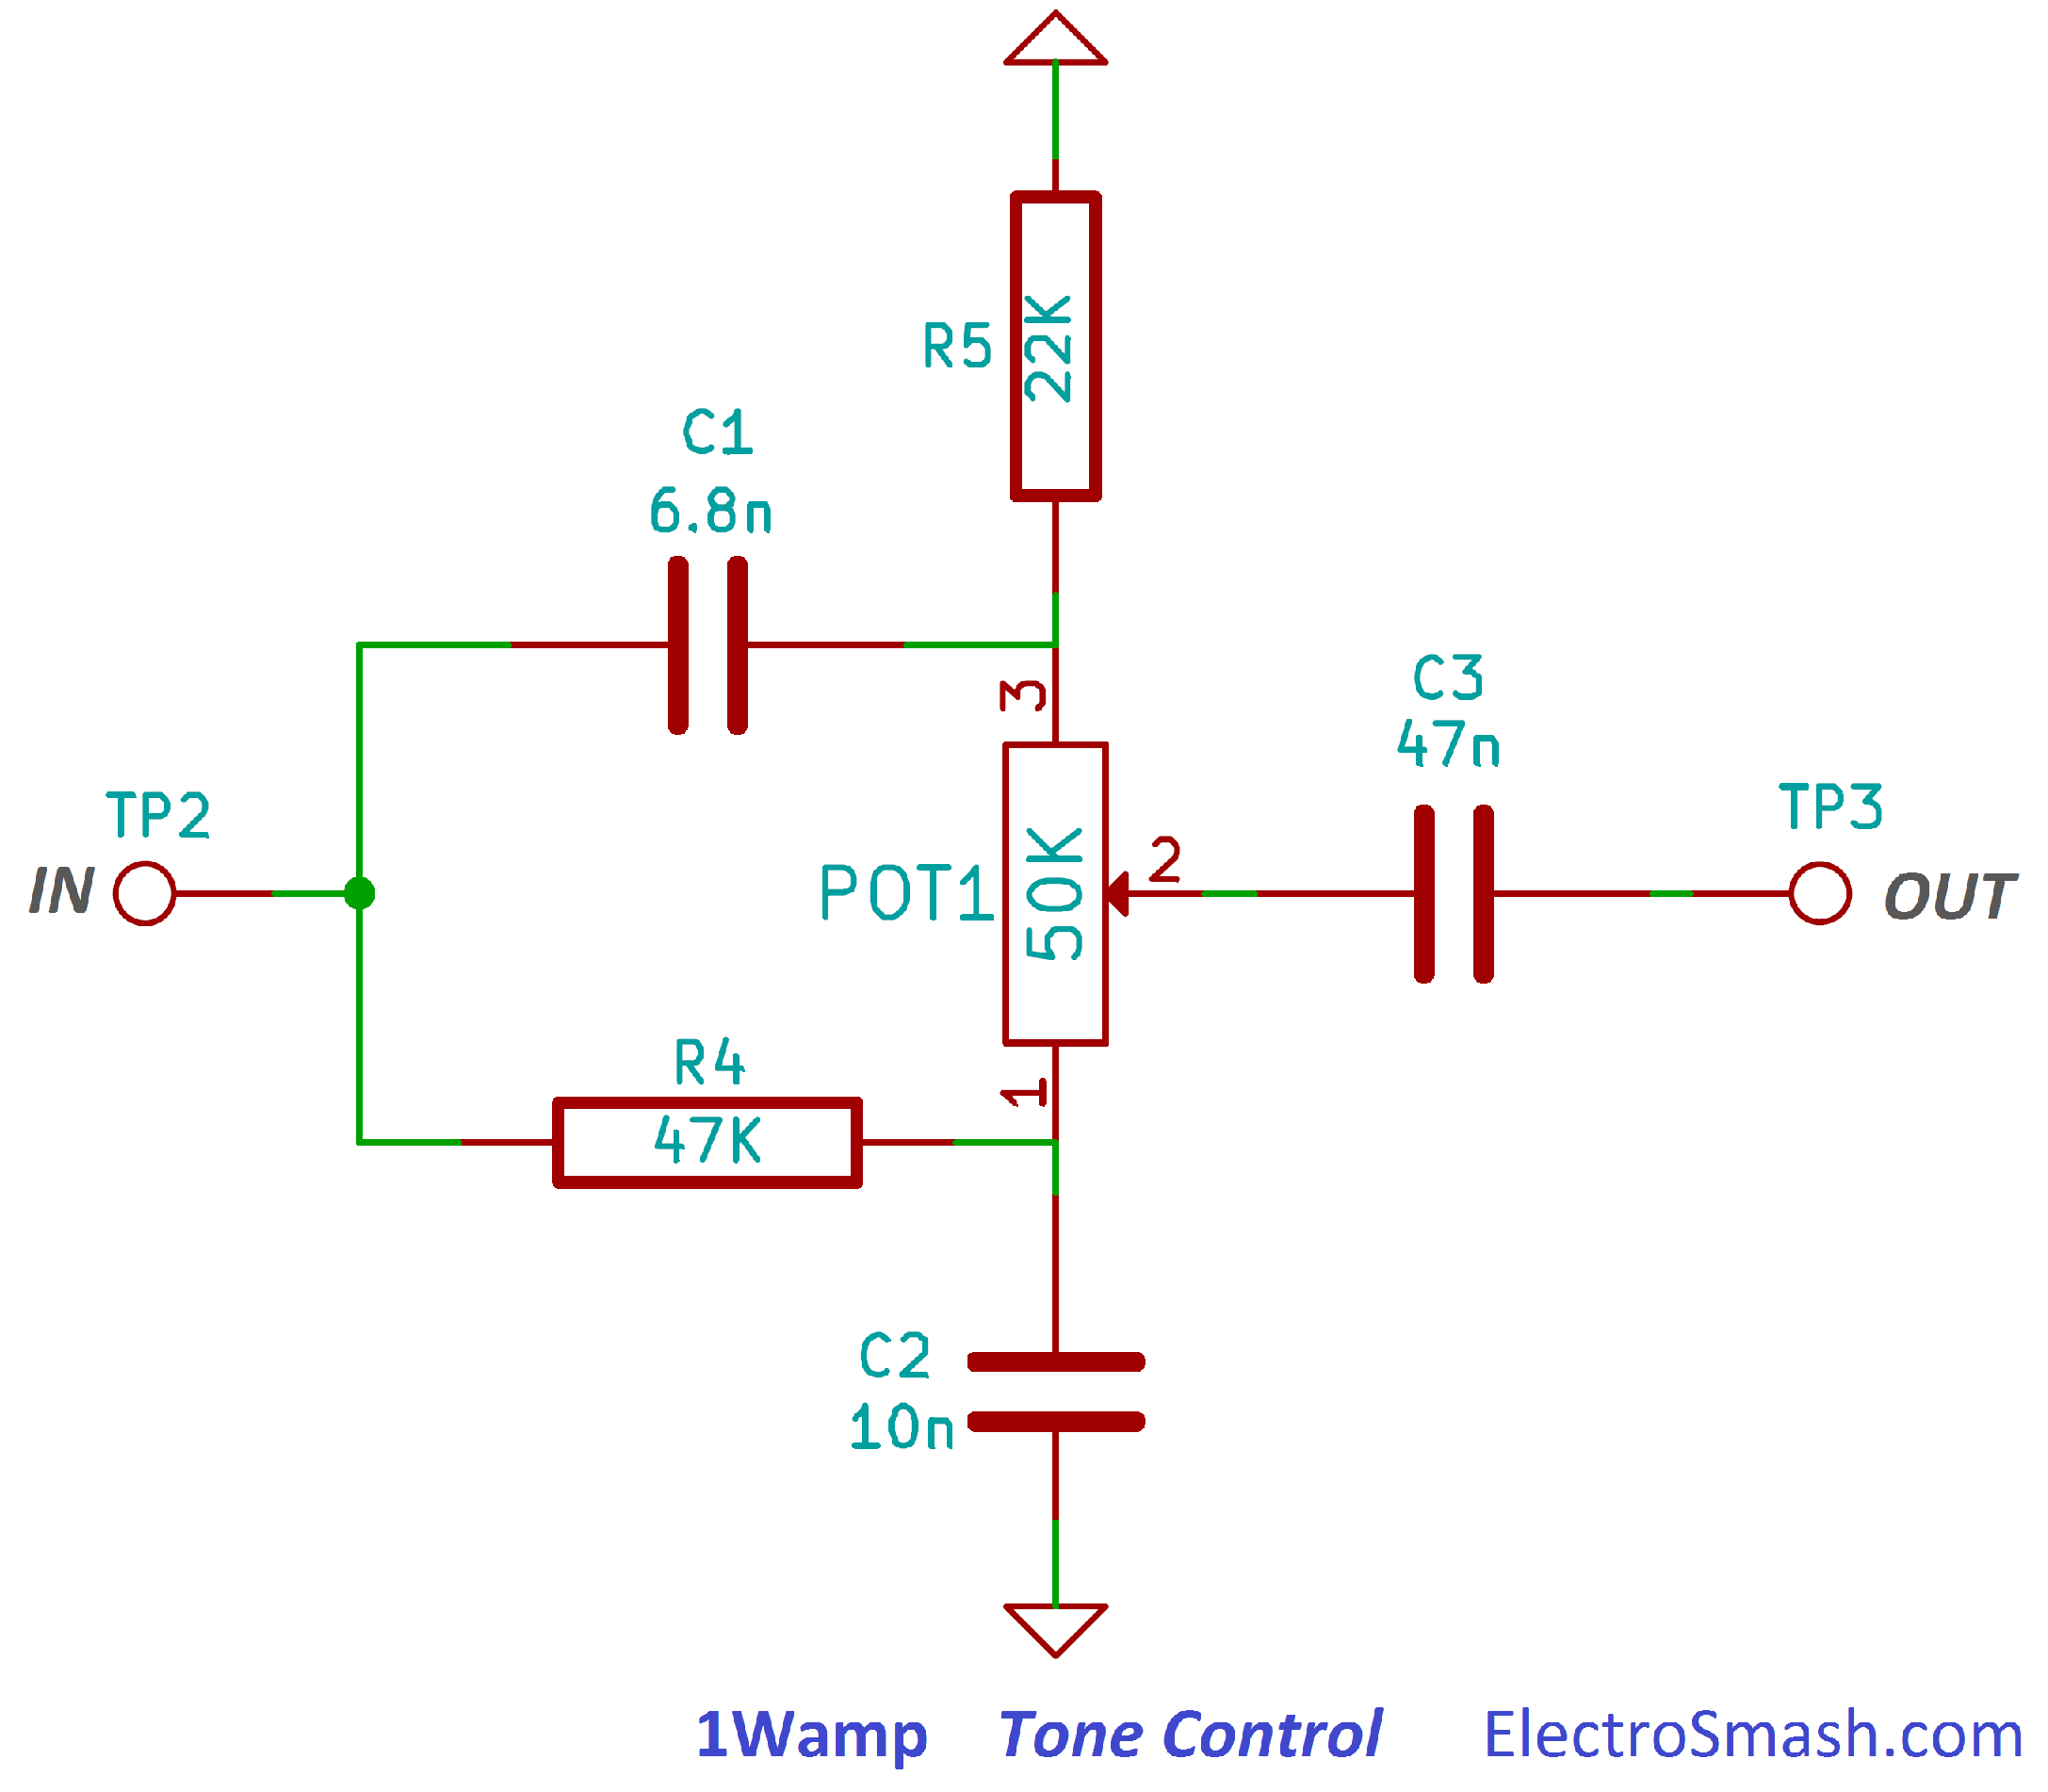 hight resolution of  1wamp tone control resize 665 2c582 wiring diagram 2002 gl1800 gl1200